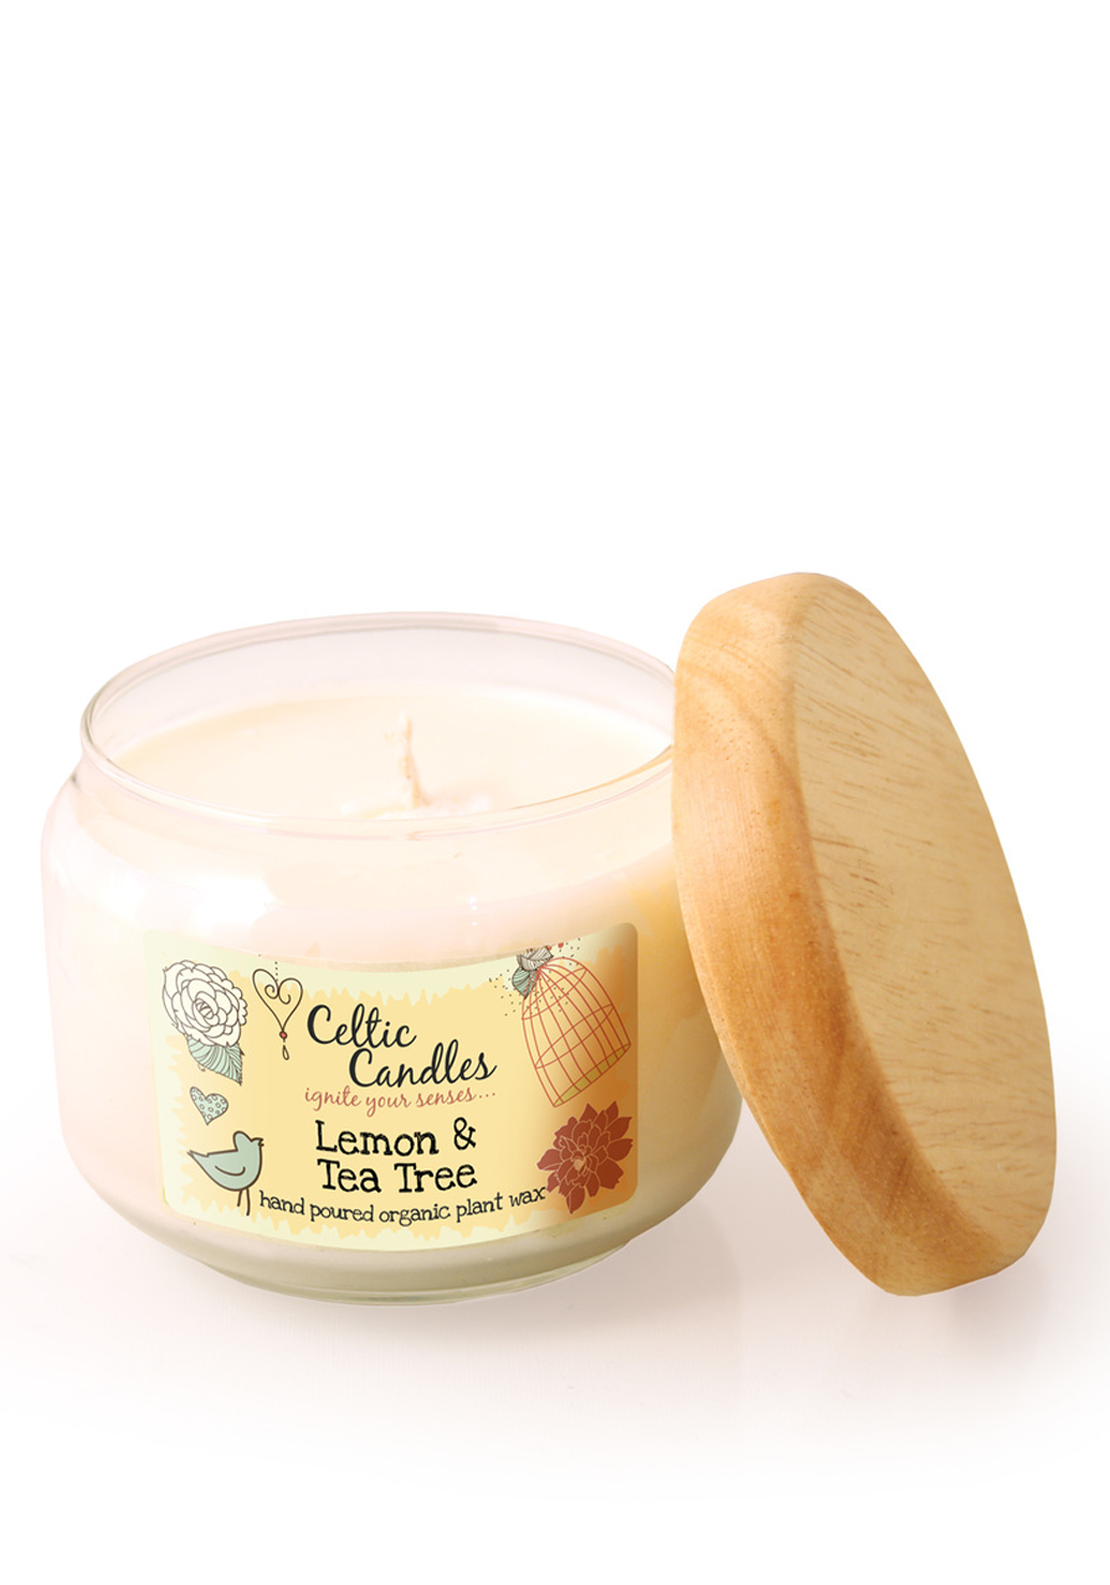 Celtic Candles Medium Lemon & Tea Tree Candle Jar, 325ml